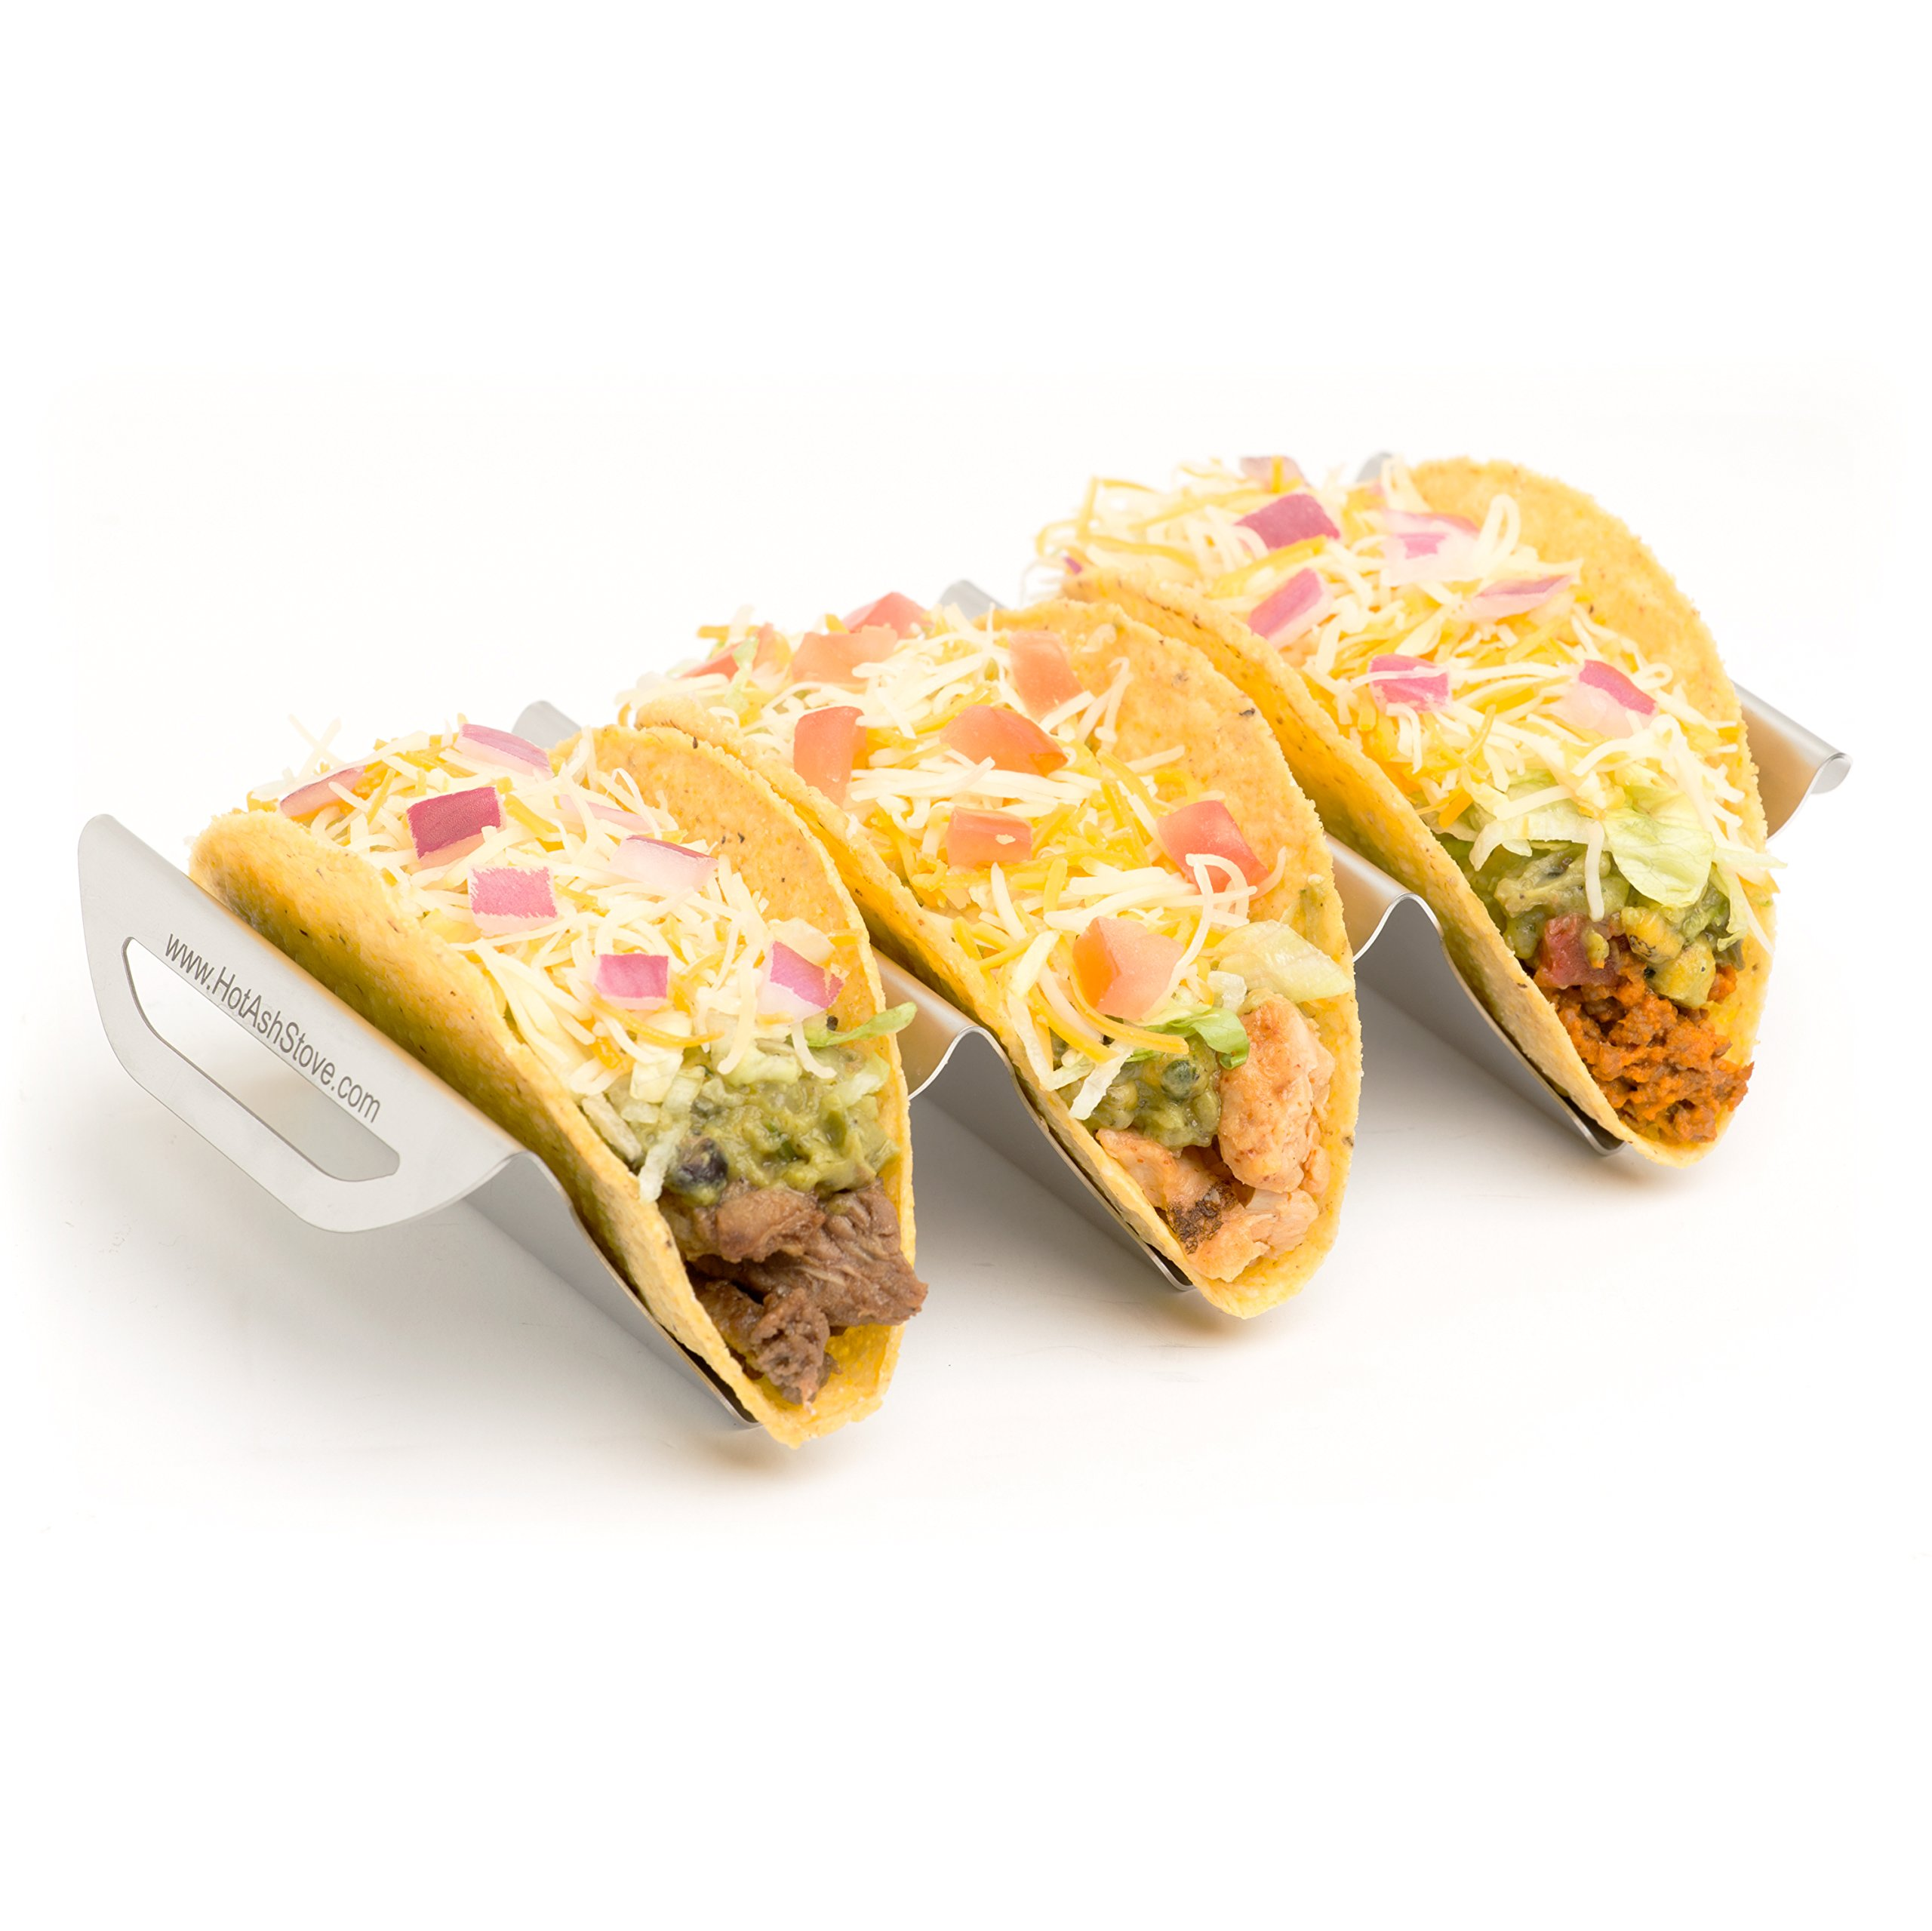 Stainless Steel Taco Holder Stand, 2-Pack, Holds 3 Tacos Each, Dishwasher, Oven and Grill Safe